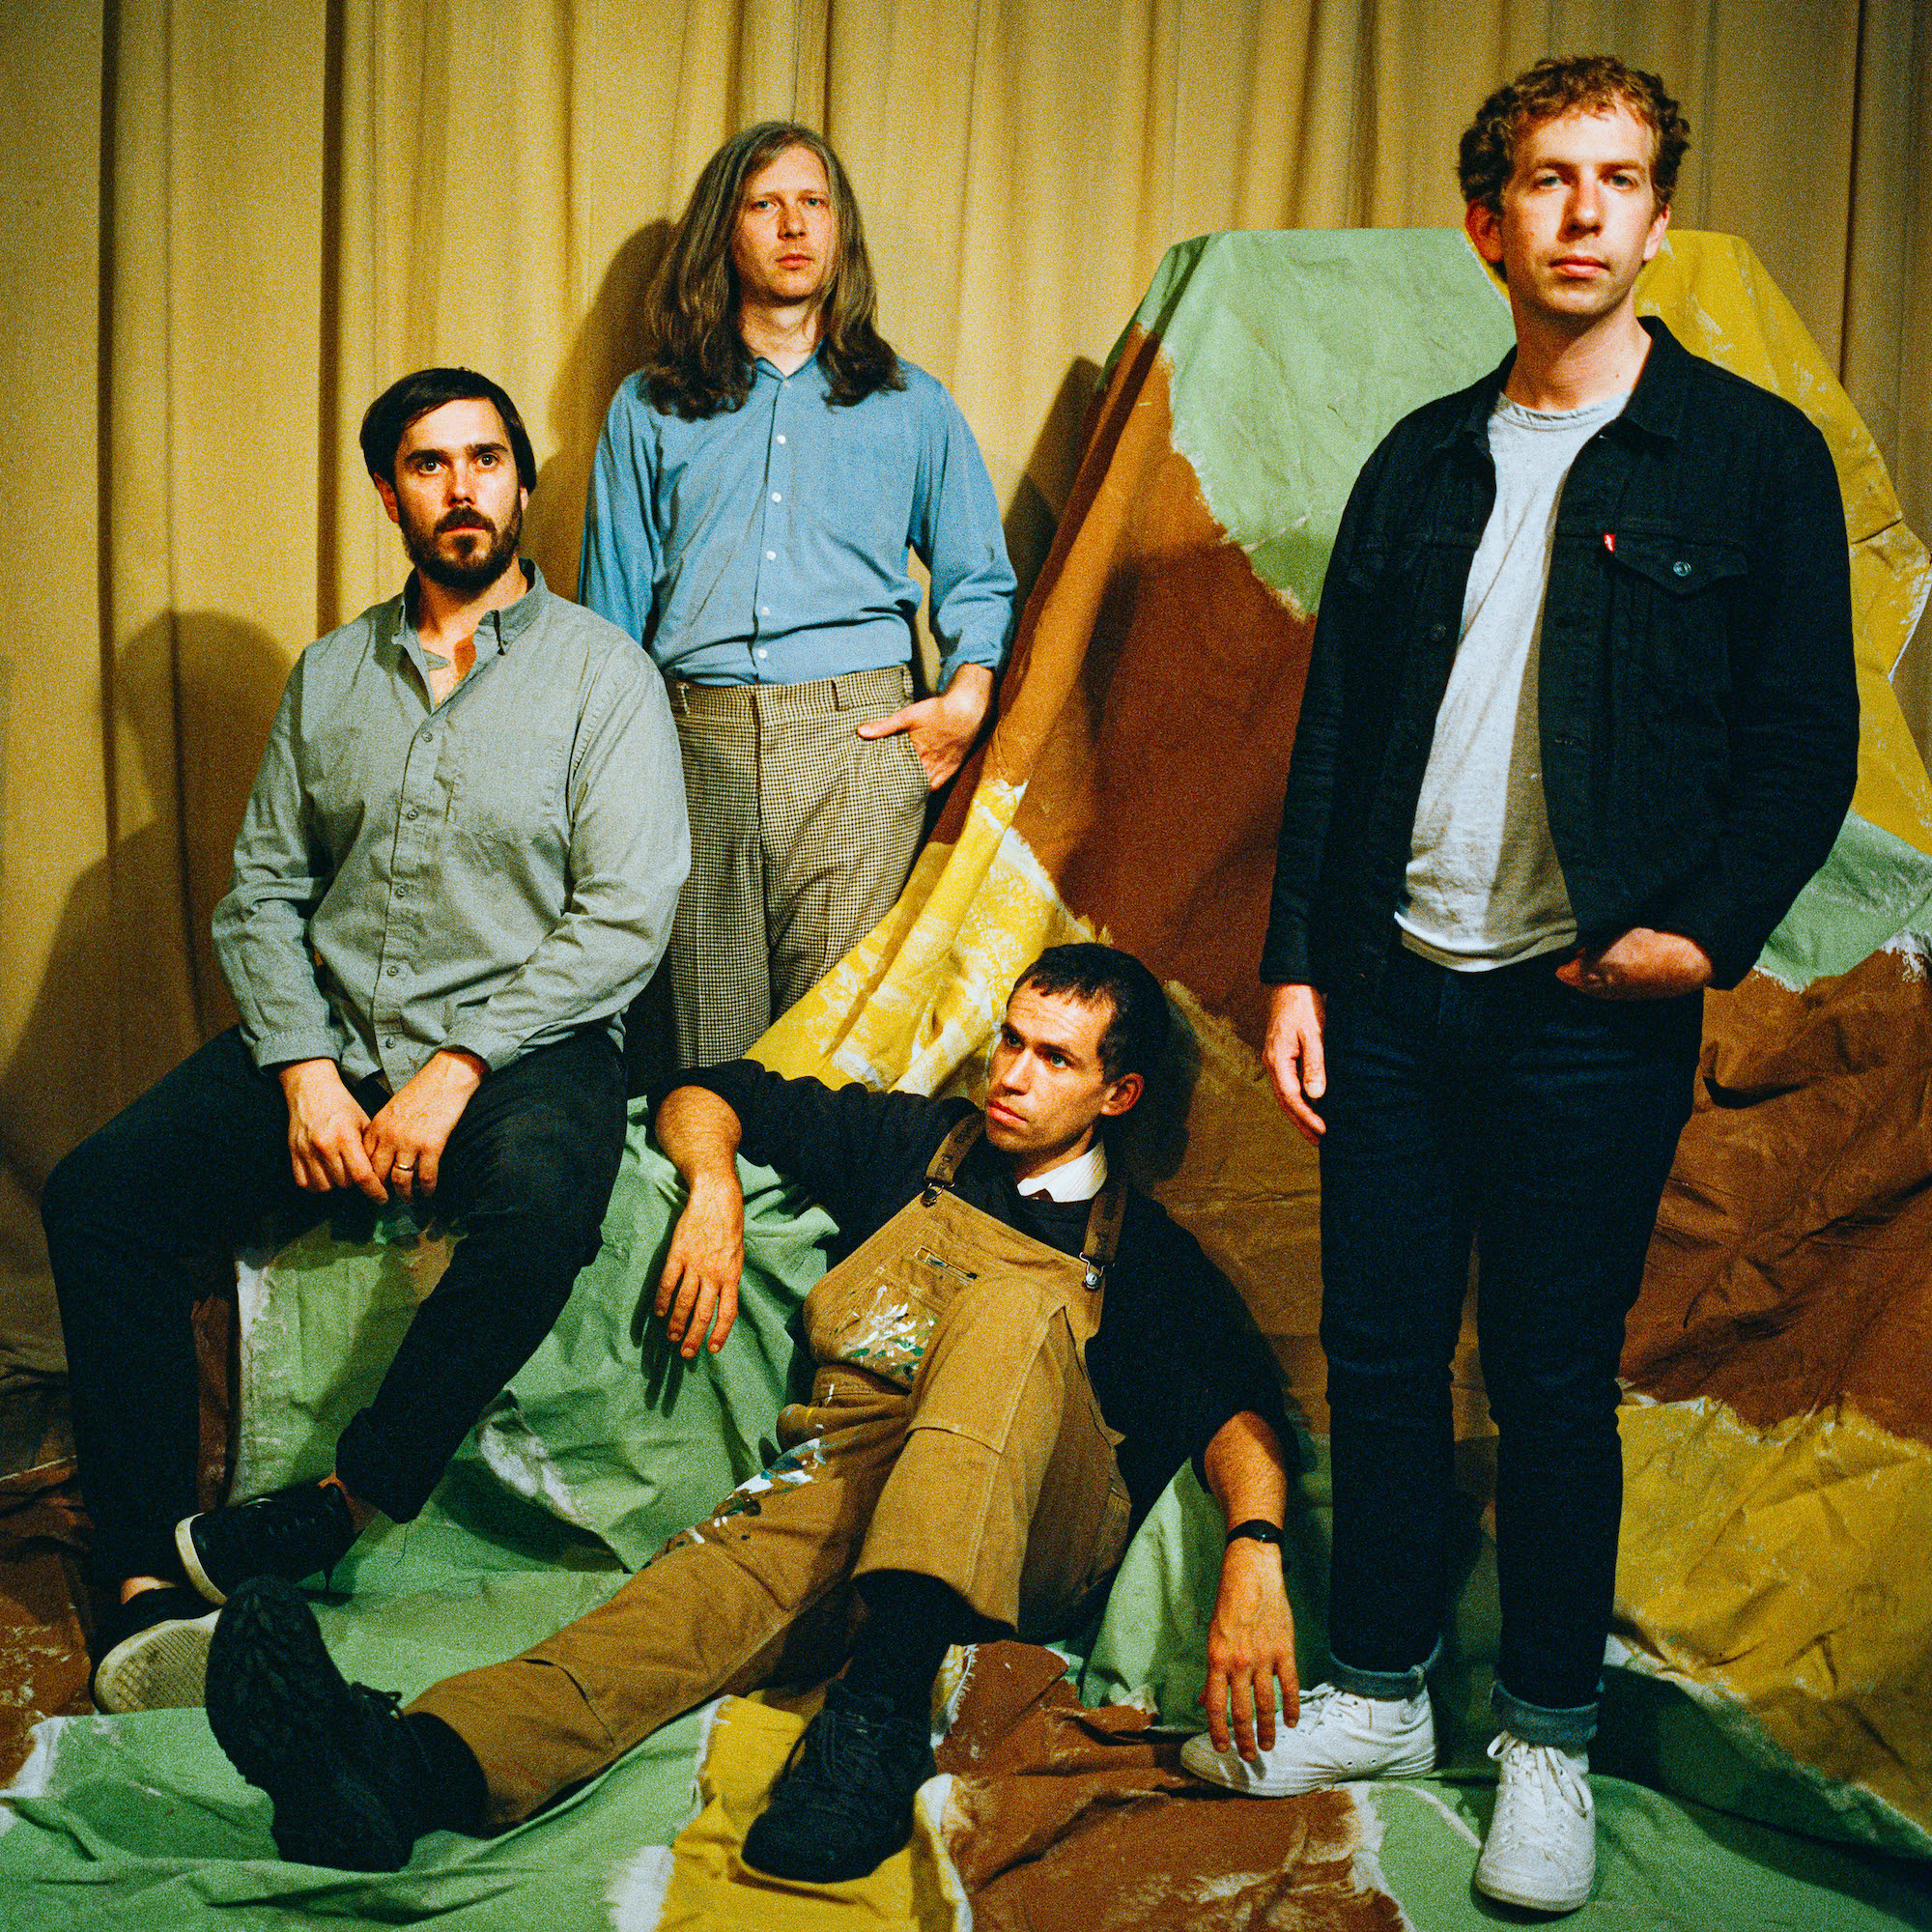 Parquet Courts Return With 'Walking at a Downtown Pace,' New Album <i>Sympathy for Life</i>